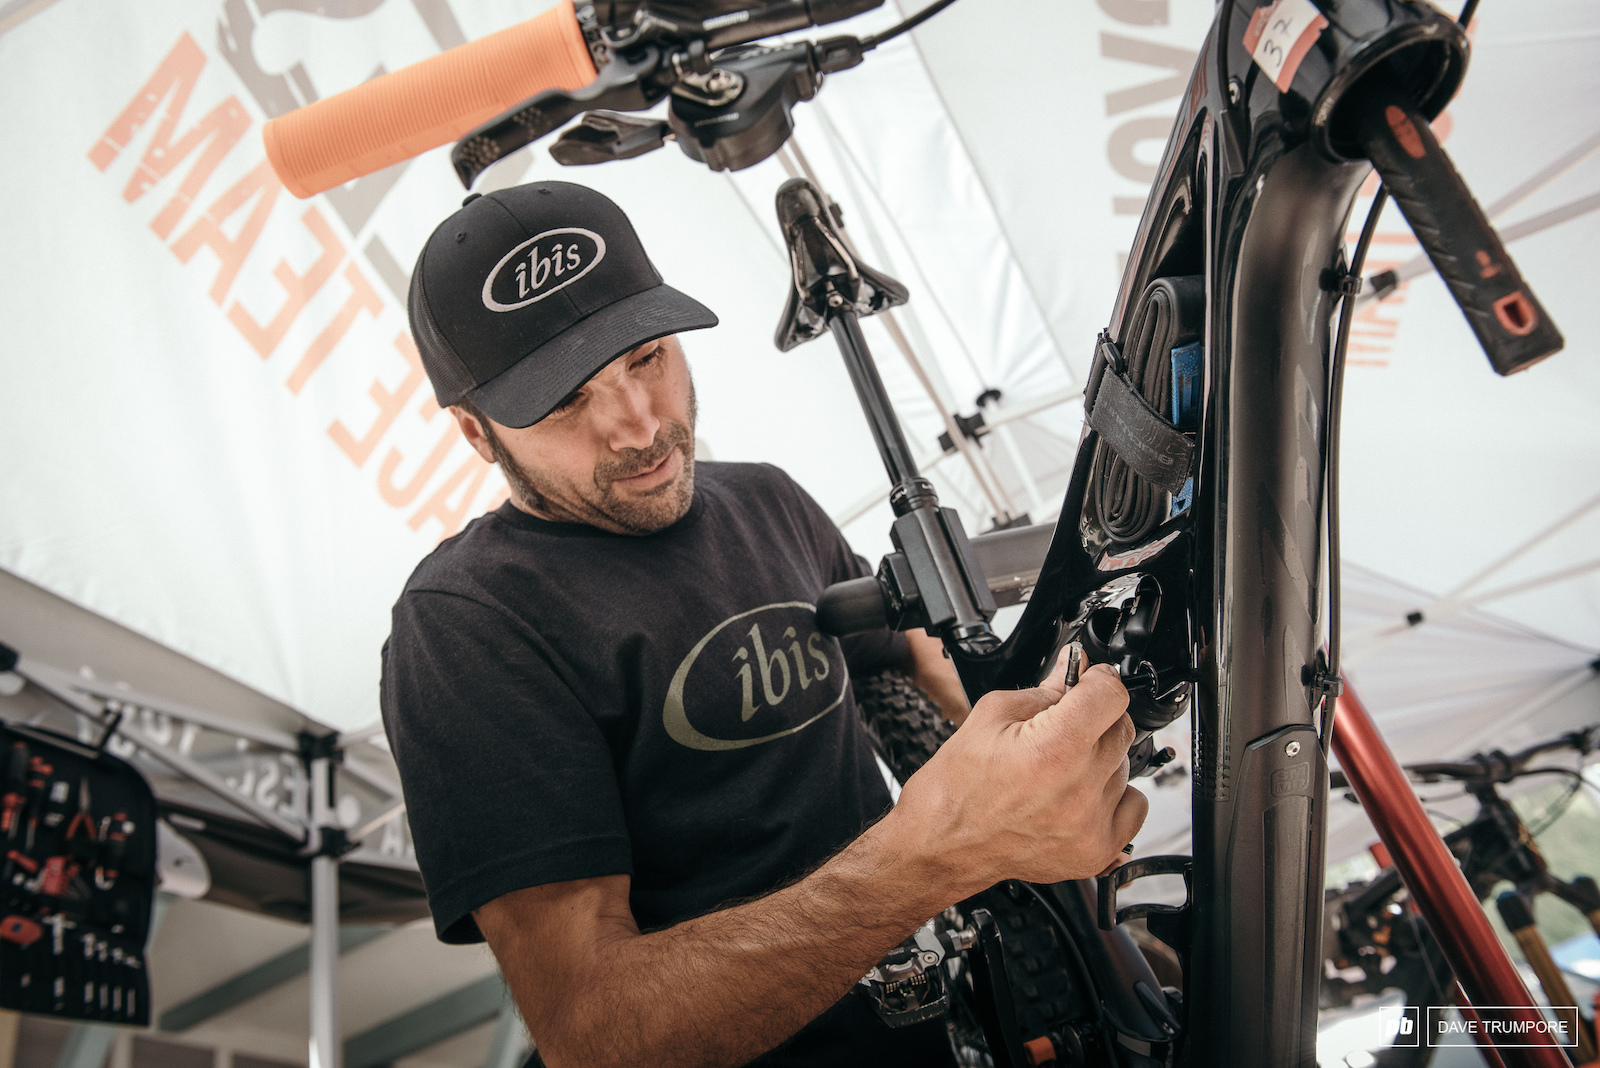 Lot s of bike prep going on as riders have had over a month off to ride and train without the regular maintenance they receive from mechanics on a race weekend.